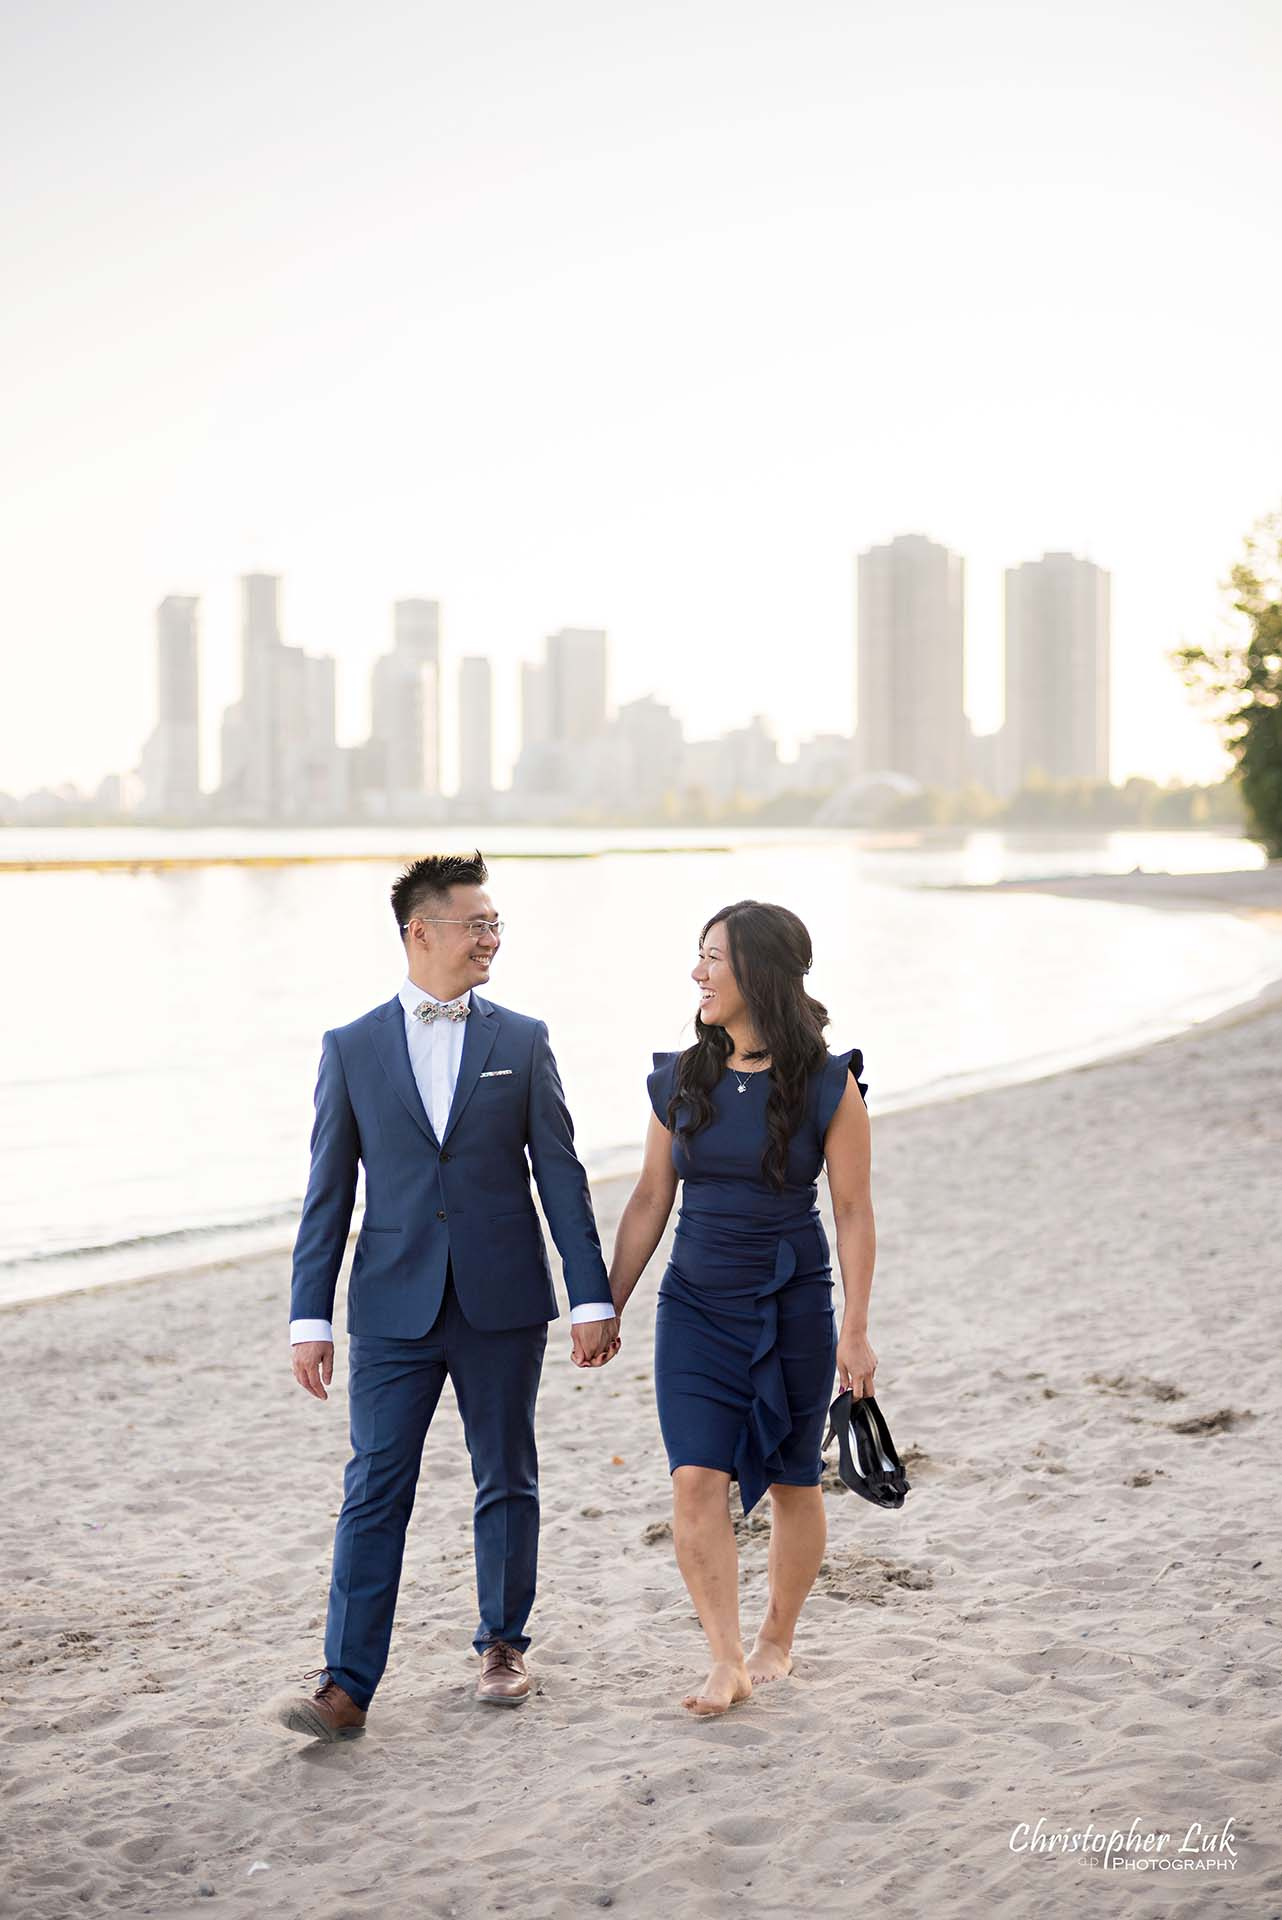 Christopher Luk Toronto Wedding Photographer - Engagement Photography - Sunnyside Pavilion Park Beach Boardwalk Toronto - Bride and Groom Natural Candid Photojournalistic Humber Bay Archway Arch Bridge Skyline Walking Vertical